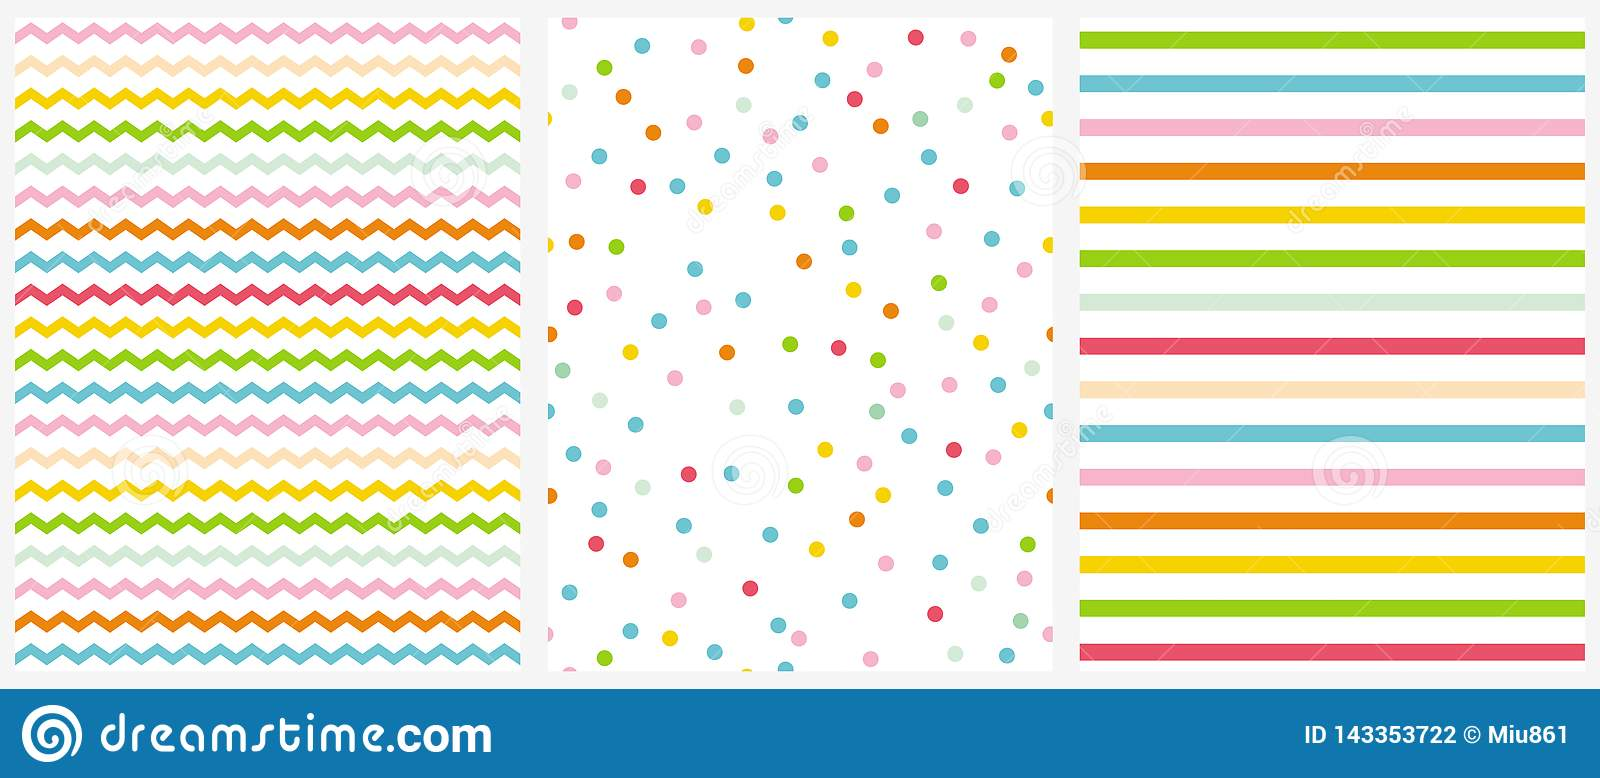 Cute Multicolor Geometric Seamless Vector Patterns. Pink, Blue, Yellow and Green Polka Dots, Tiny Chevron and Vertical Stripes.